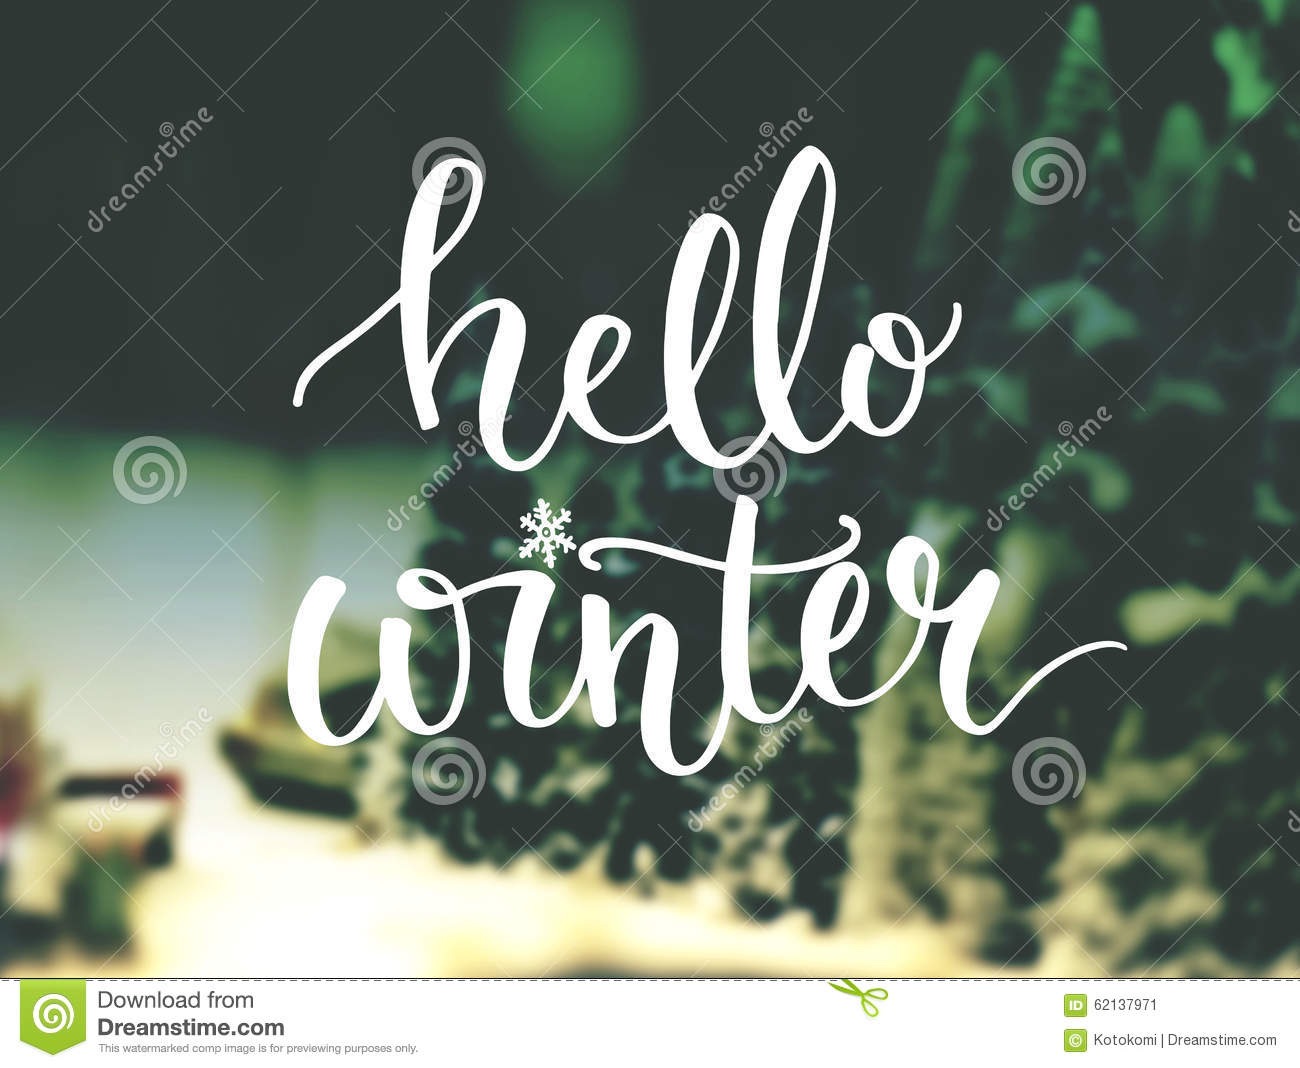 Hello Winter Typography Overlay On Blurred Photo Stock